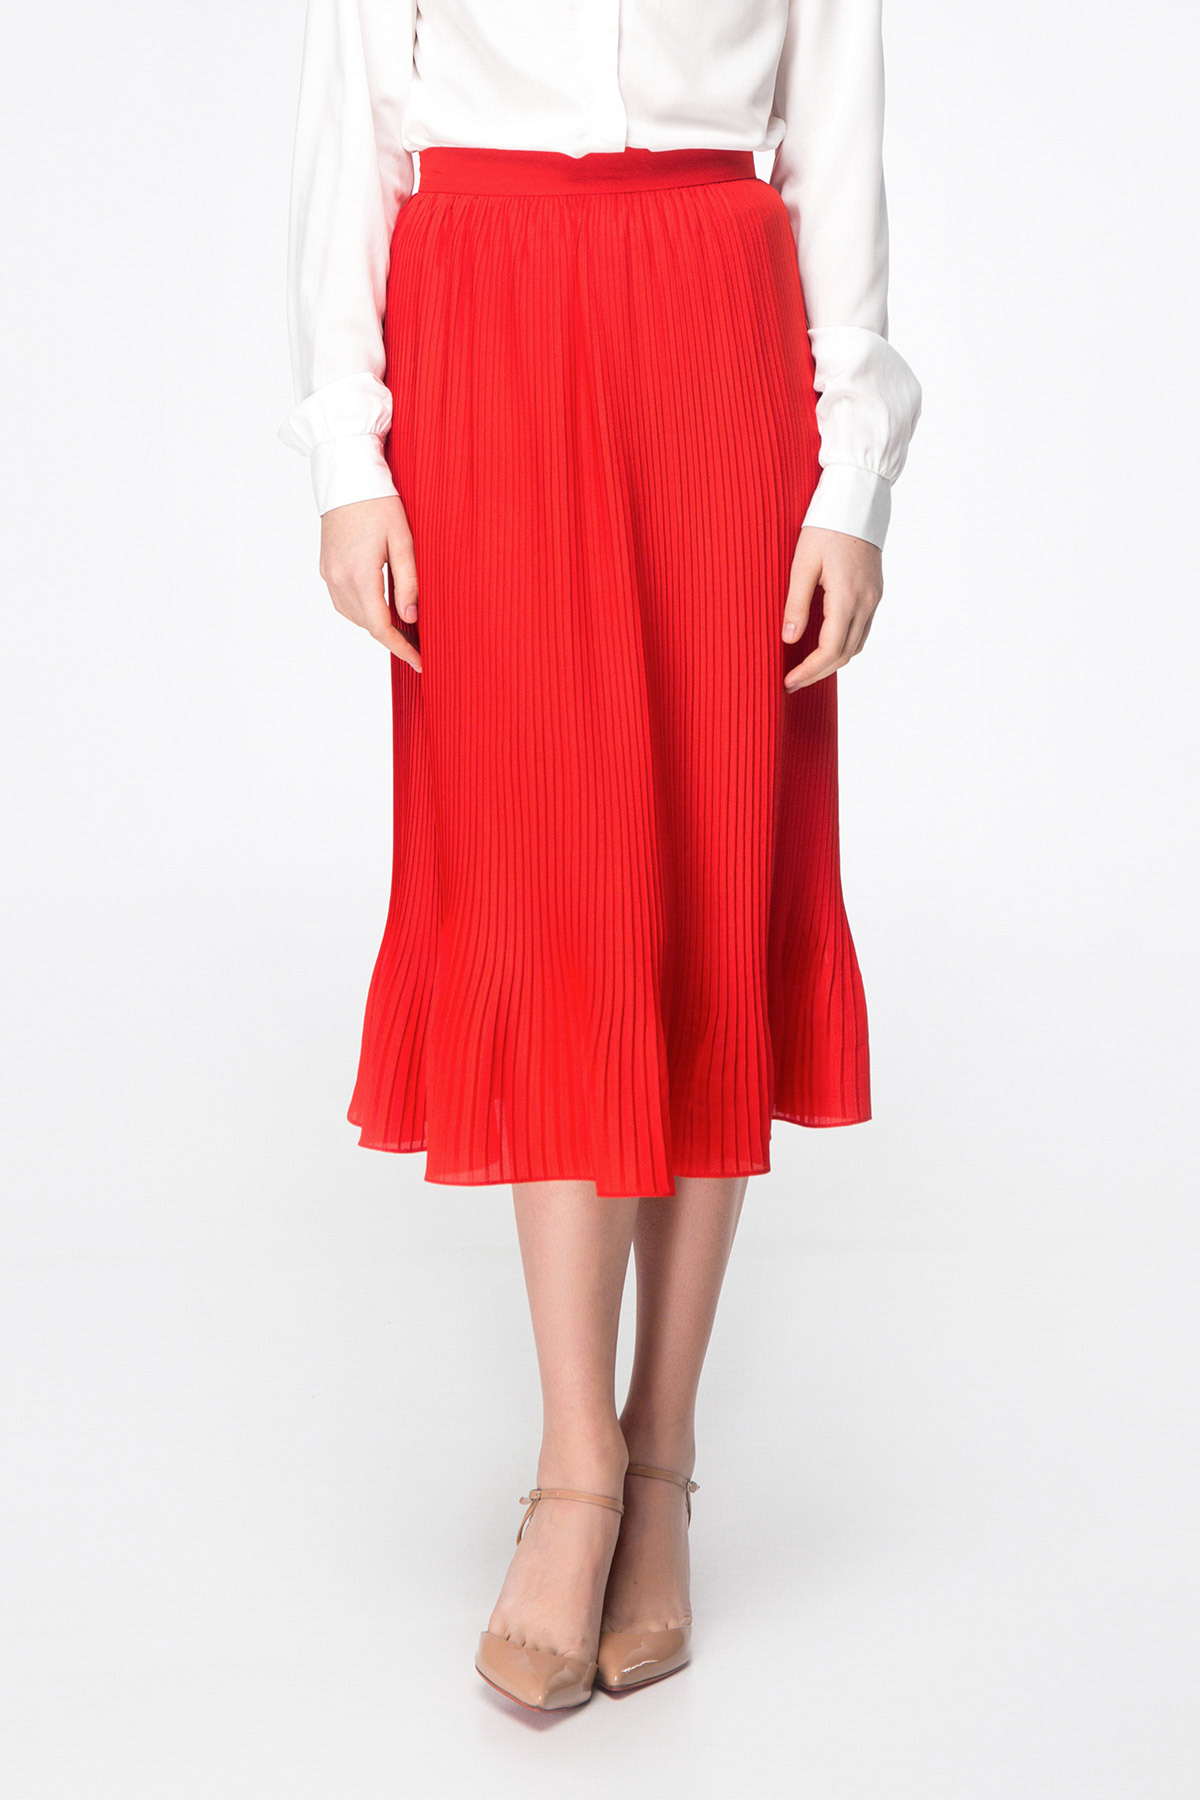 cc5adbfd479 Red pleated midi skirt photo 1 - MustHave online store